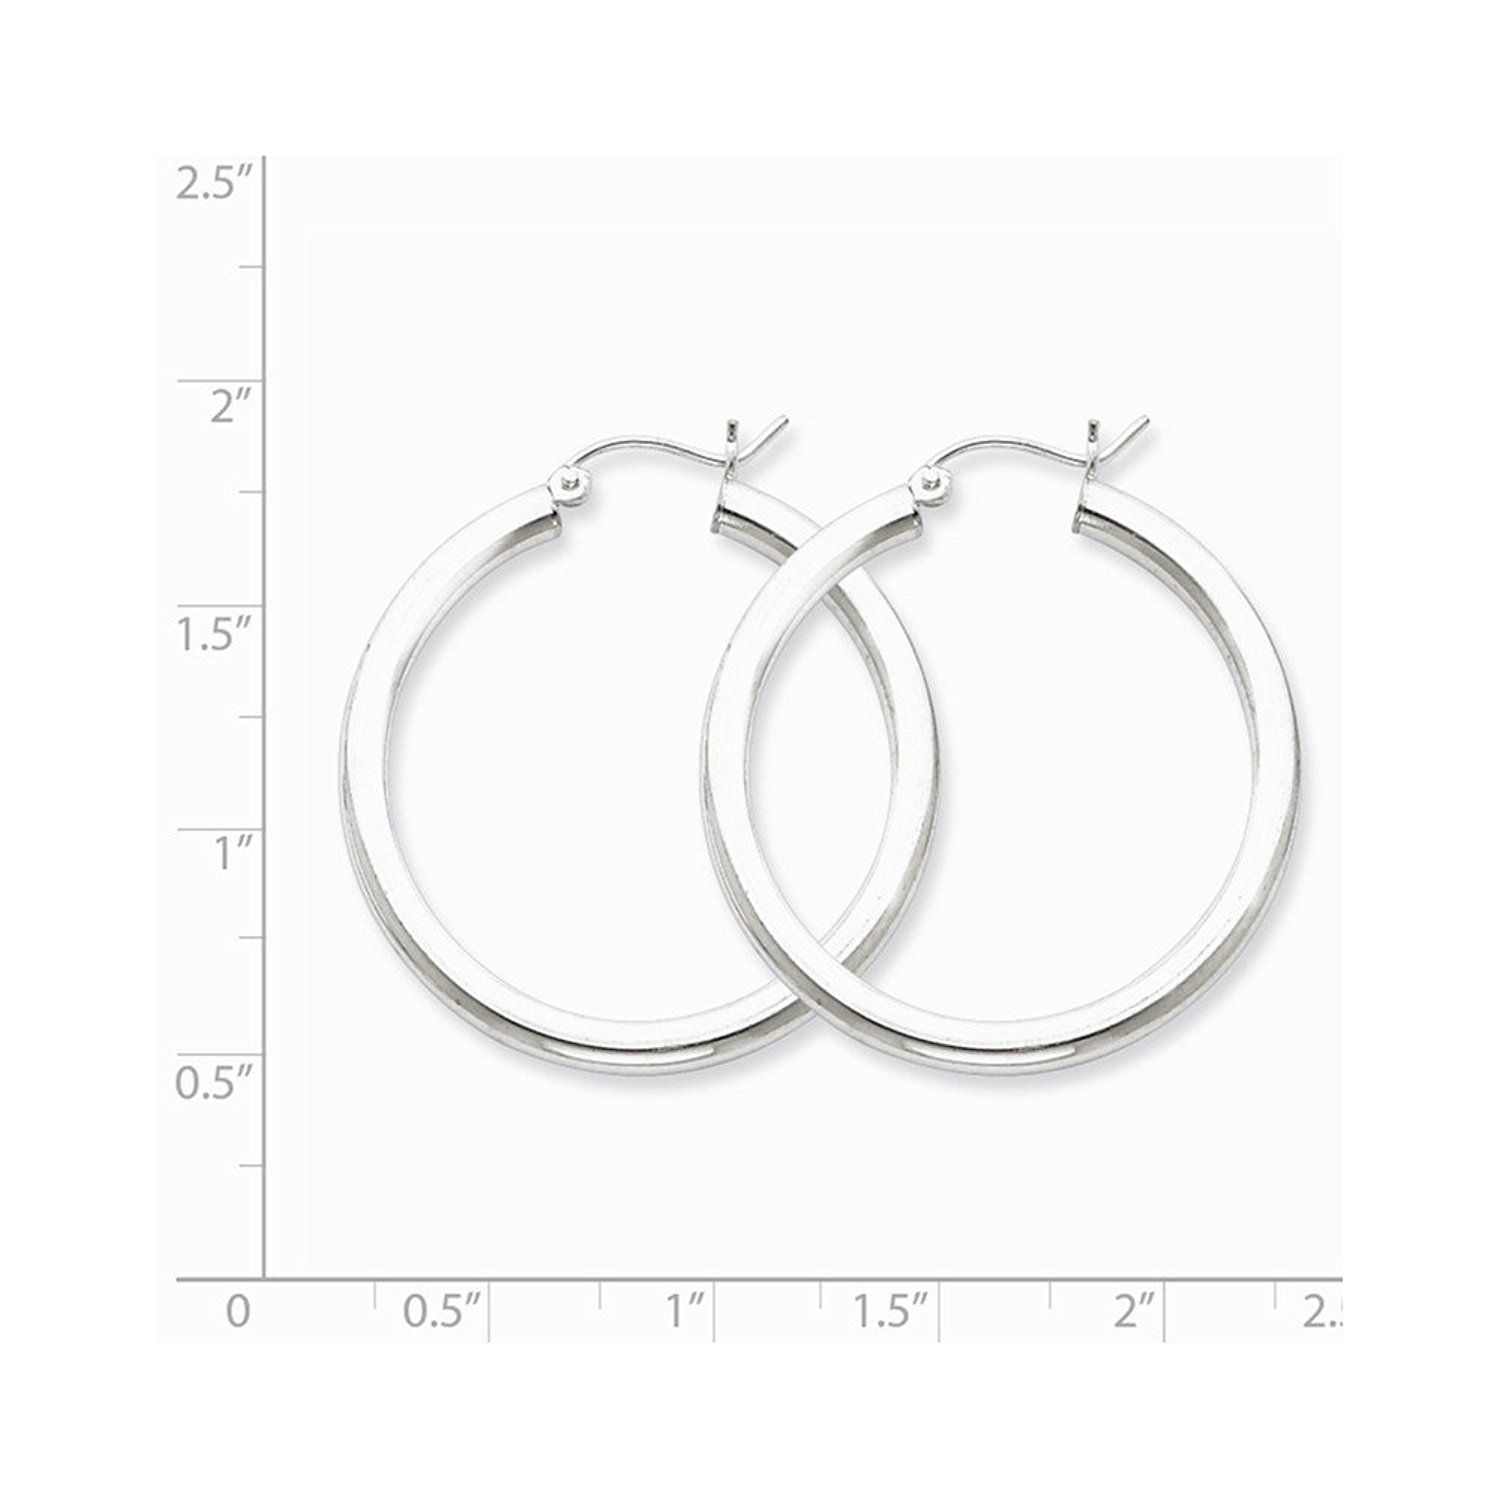 3e36f24f1 ICE CARATS 925 Sterling Silver 3mm Round Hoop Earrings Ear Hoops Set Bead  Fine Jewelry Gift For Women Heart -- You can get more details by clicking  on the ...